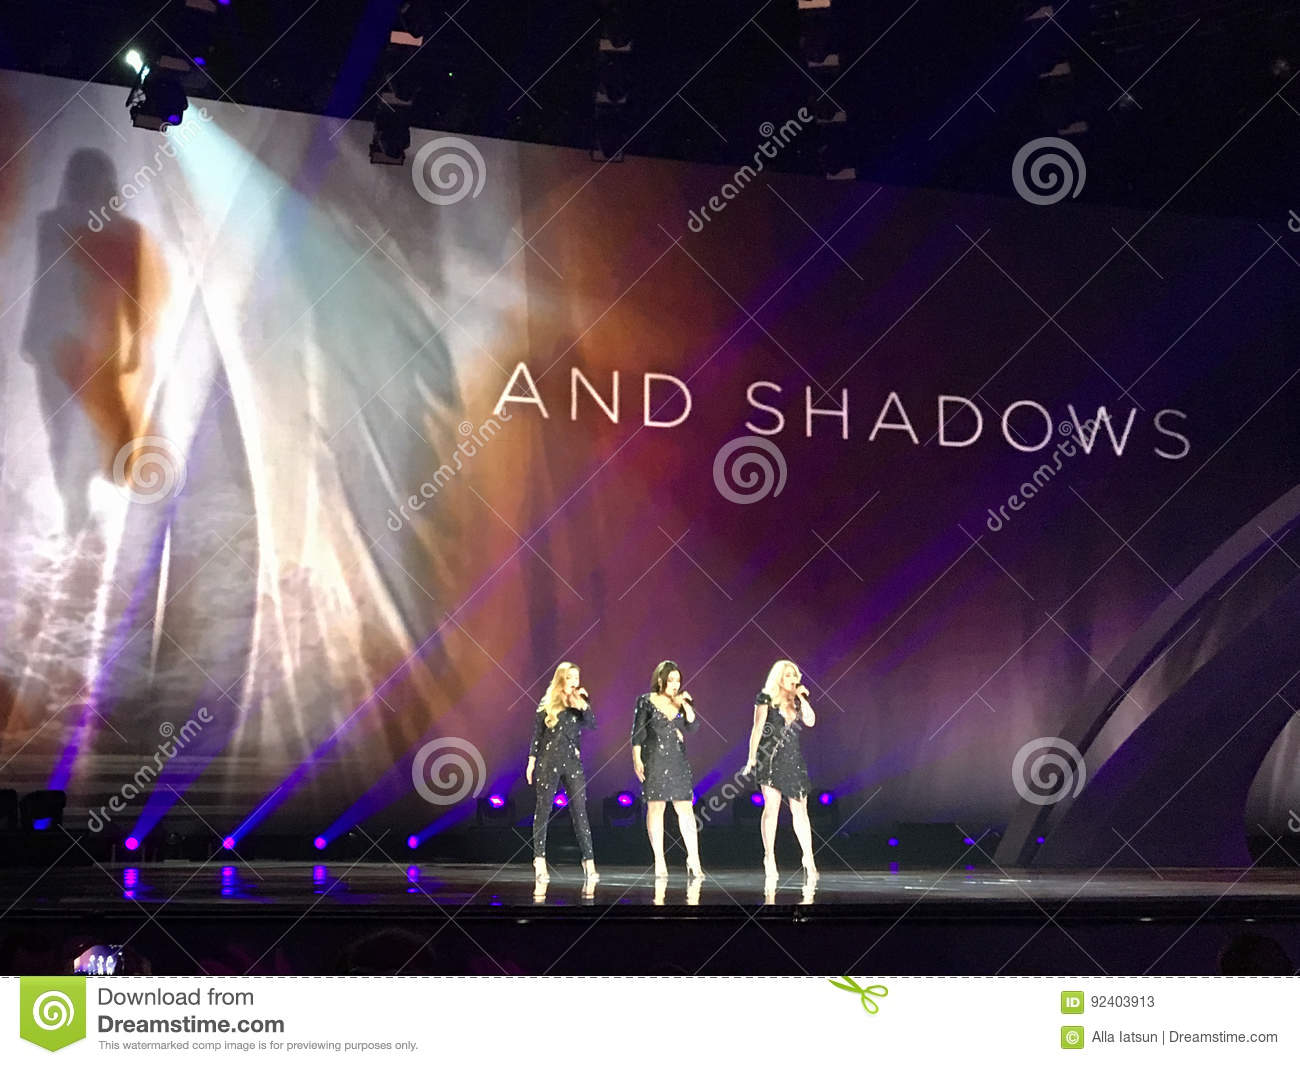 Final of Eurovision 2017 on the stage of the International Exhibition Center in the Kyiv, Ukraine. OG3NE from